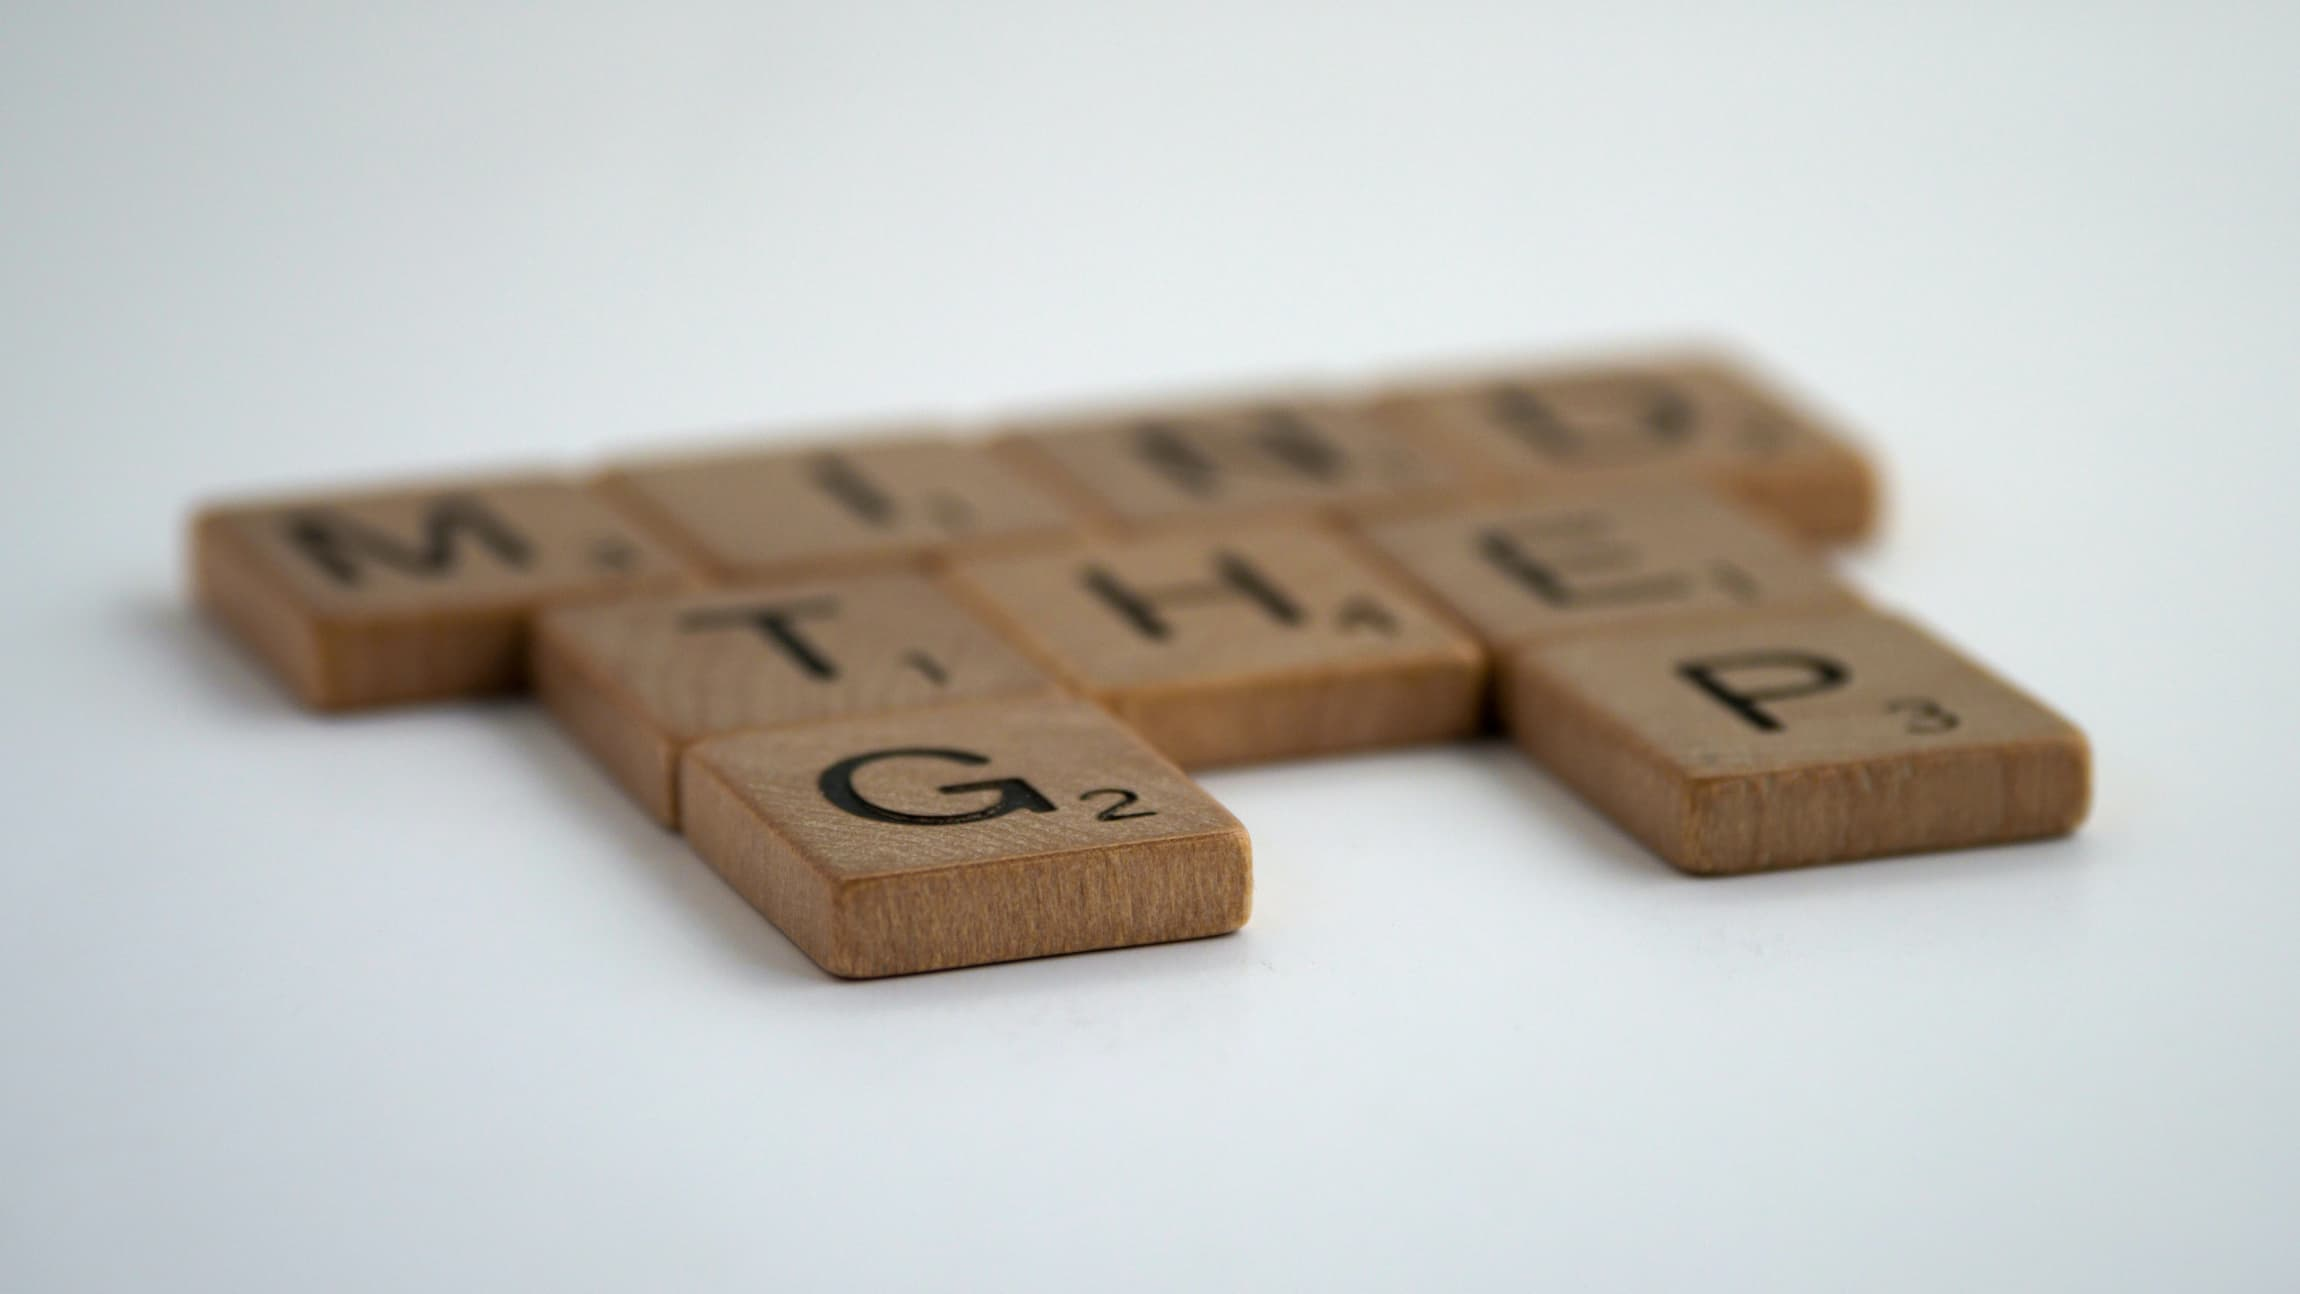 Wooden Scrabble game tiles arranged to spell mind the gap.